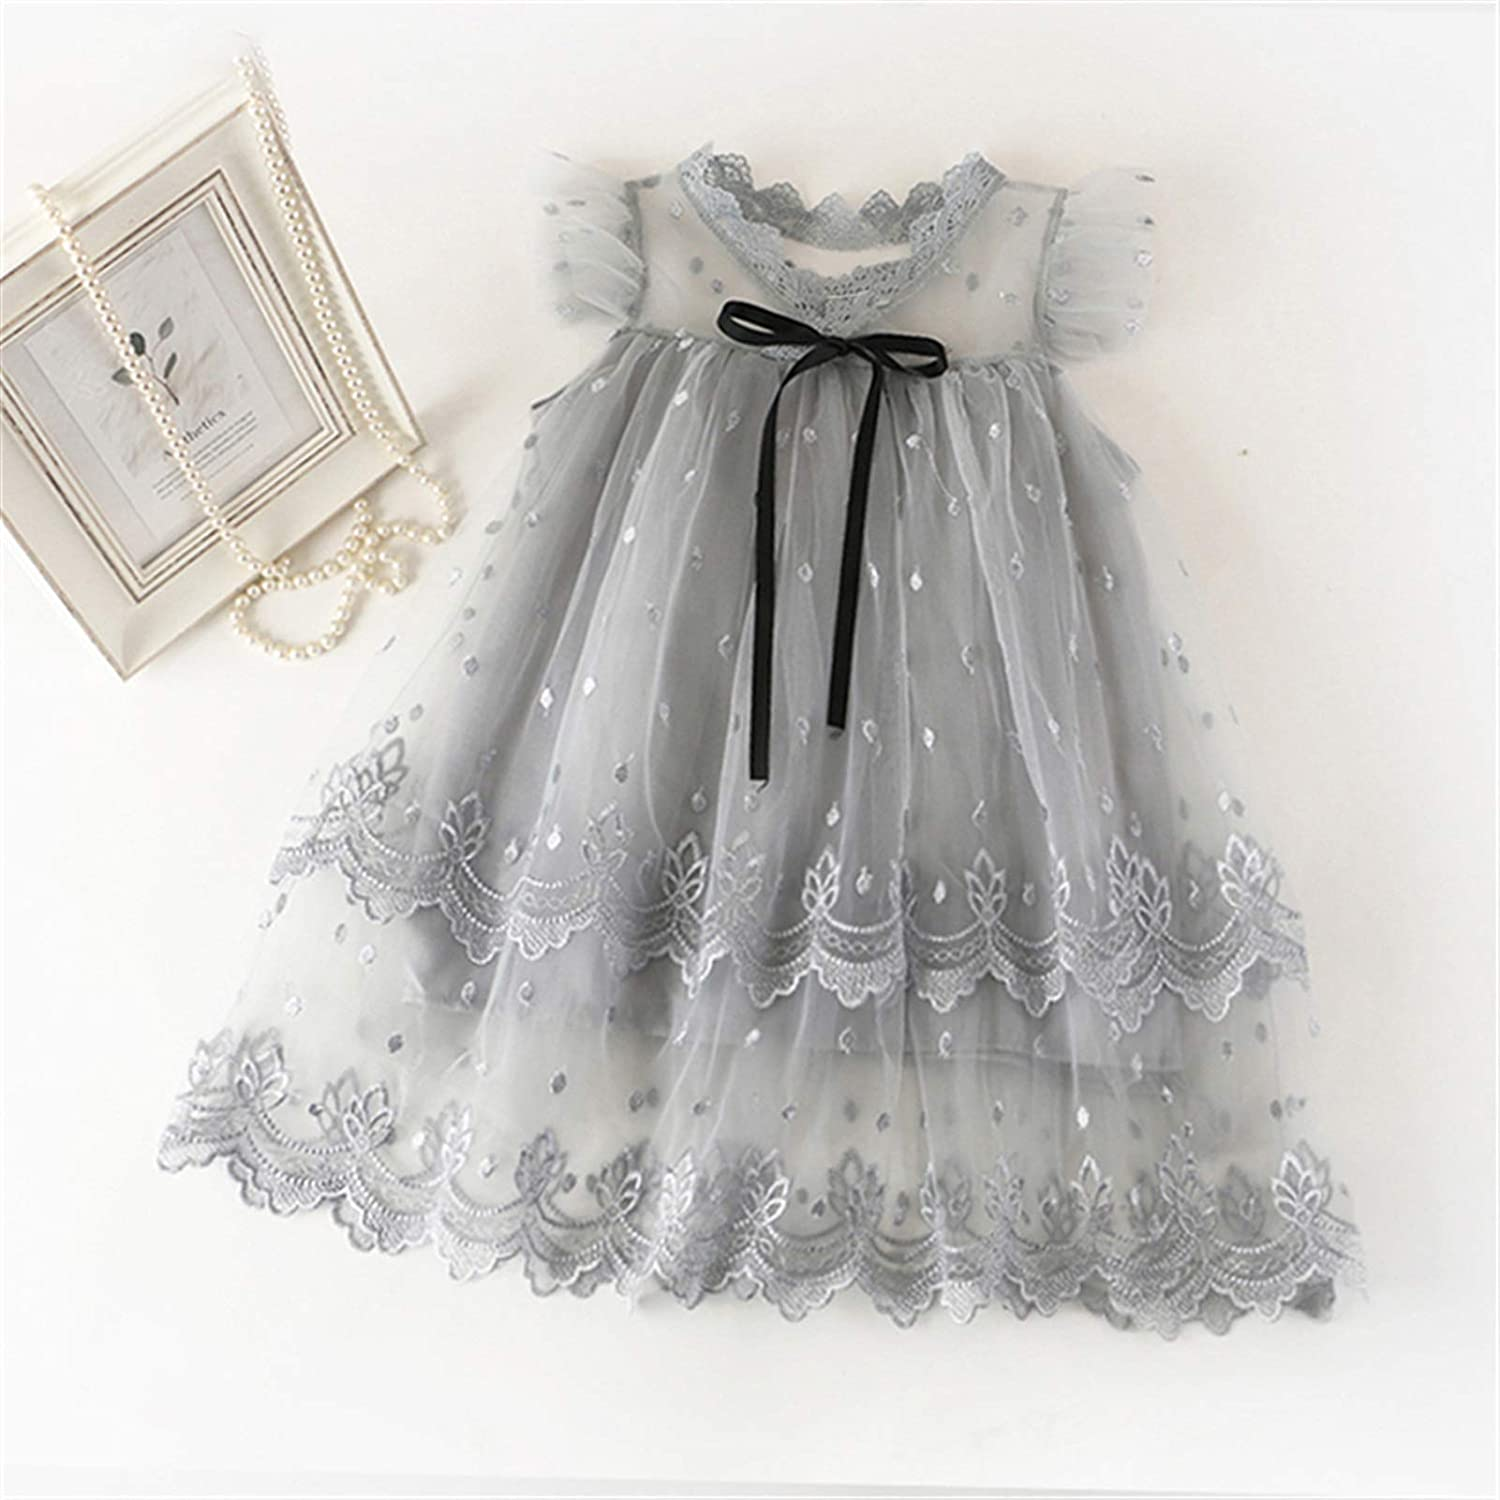 Comfortable and Exquisite Dress Princess Girls Dress Girls Clothes Children Clothing Summer Party Tutu Kids Dresses for Girls Toddler Girls Casual Dress 3 8T (Color : Style 10 Gray, Kid Size : 3T)